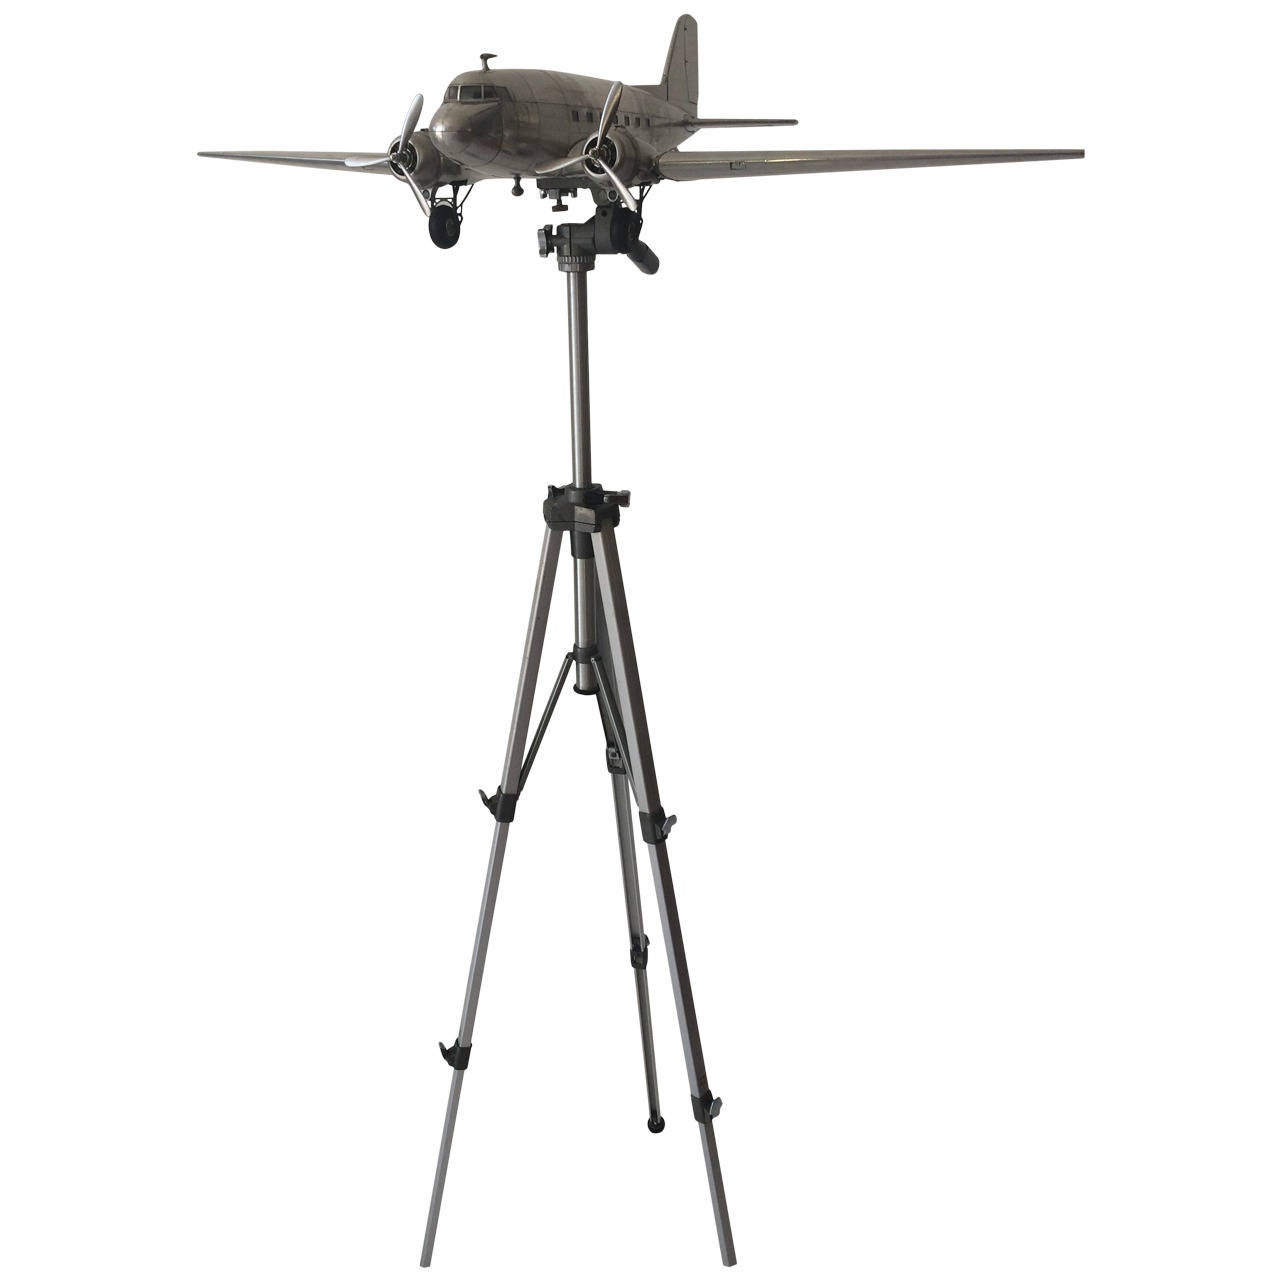 DC 3 Airplane Scale Model With Adjustable Tripod 1